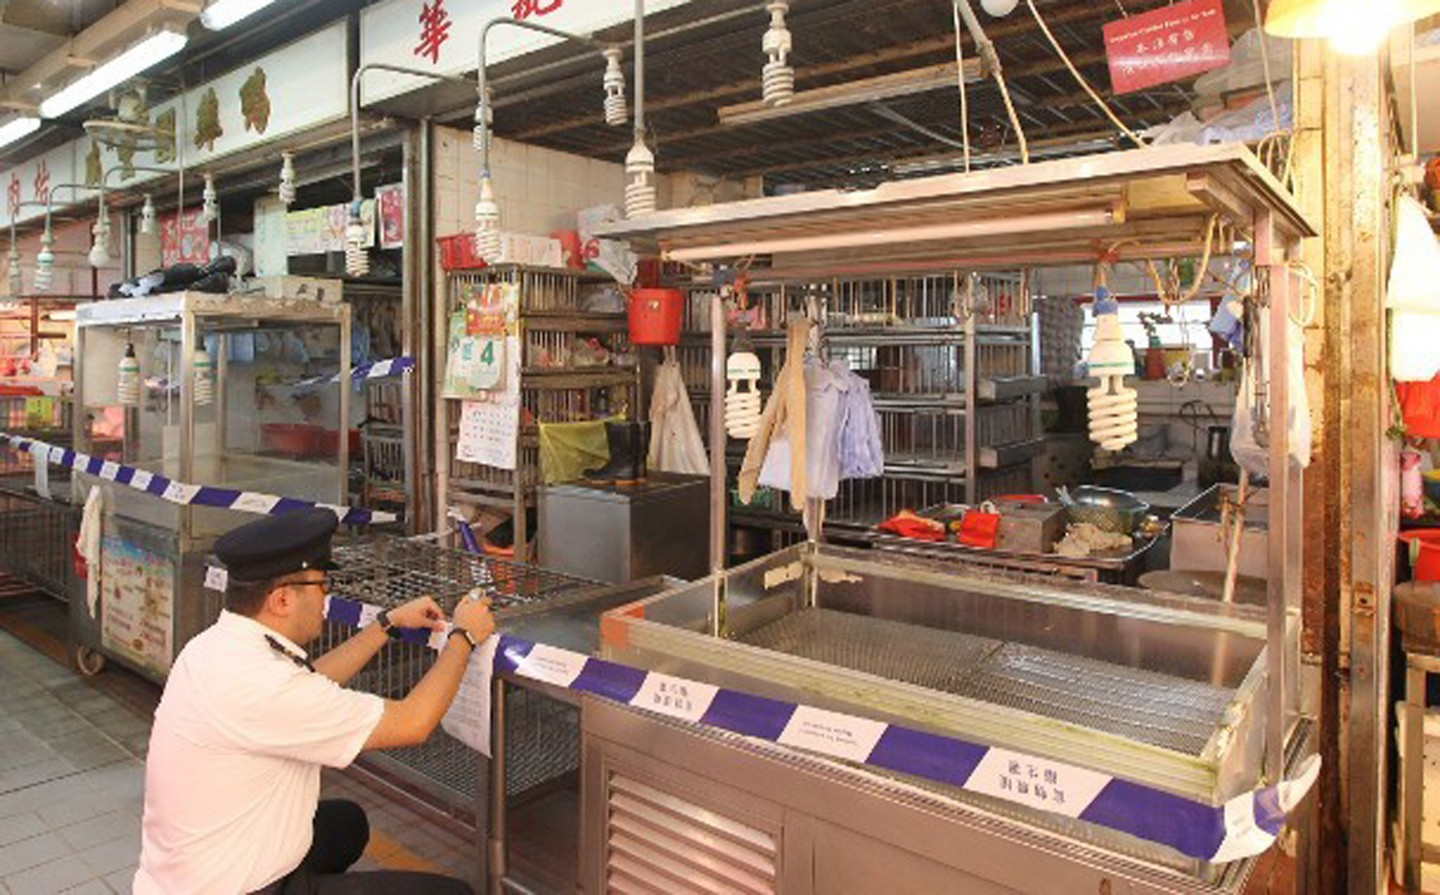 Poultry stalls in Hong Kong are not allowed to sell live chickens from 5 June 2016, in light of H7N9 bird flu virus found in a sample test. (orientaldaily.on.cc)